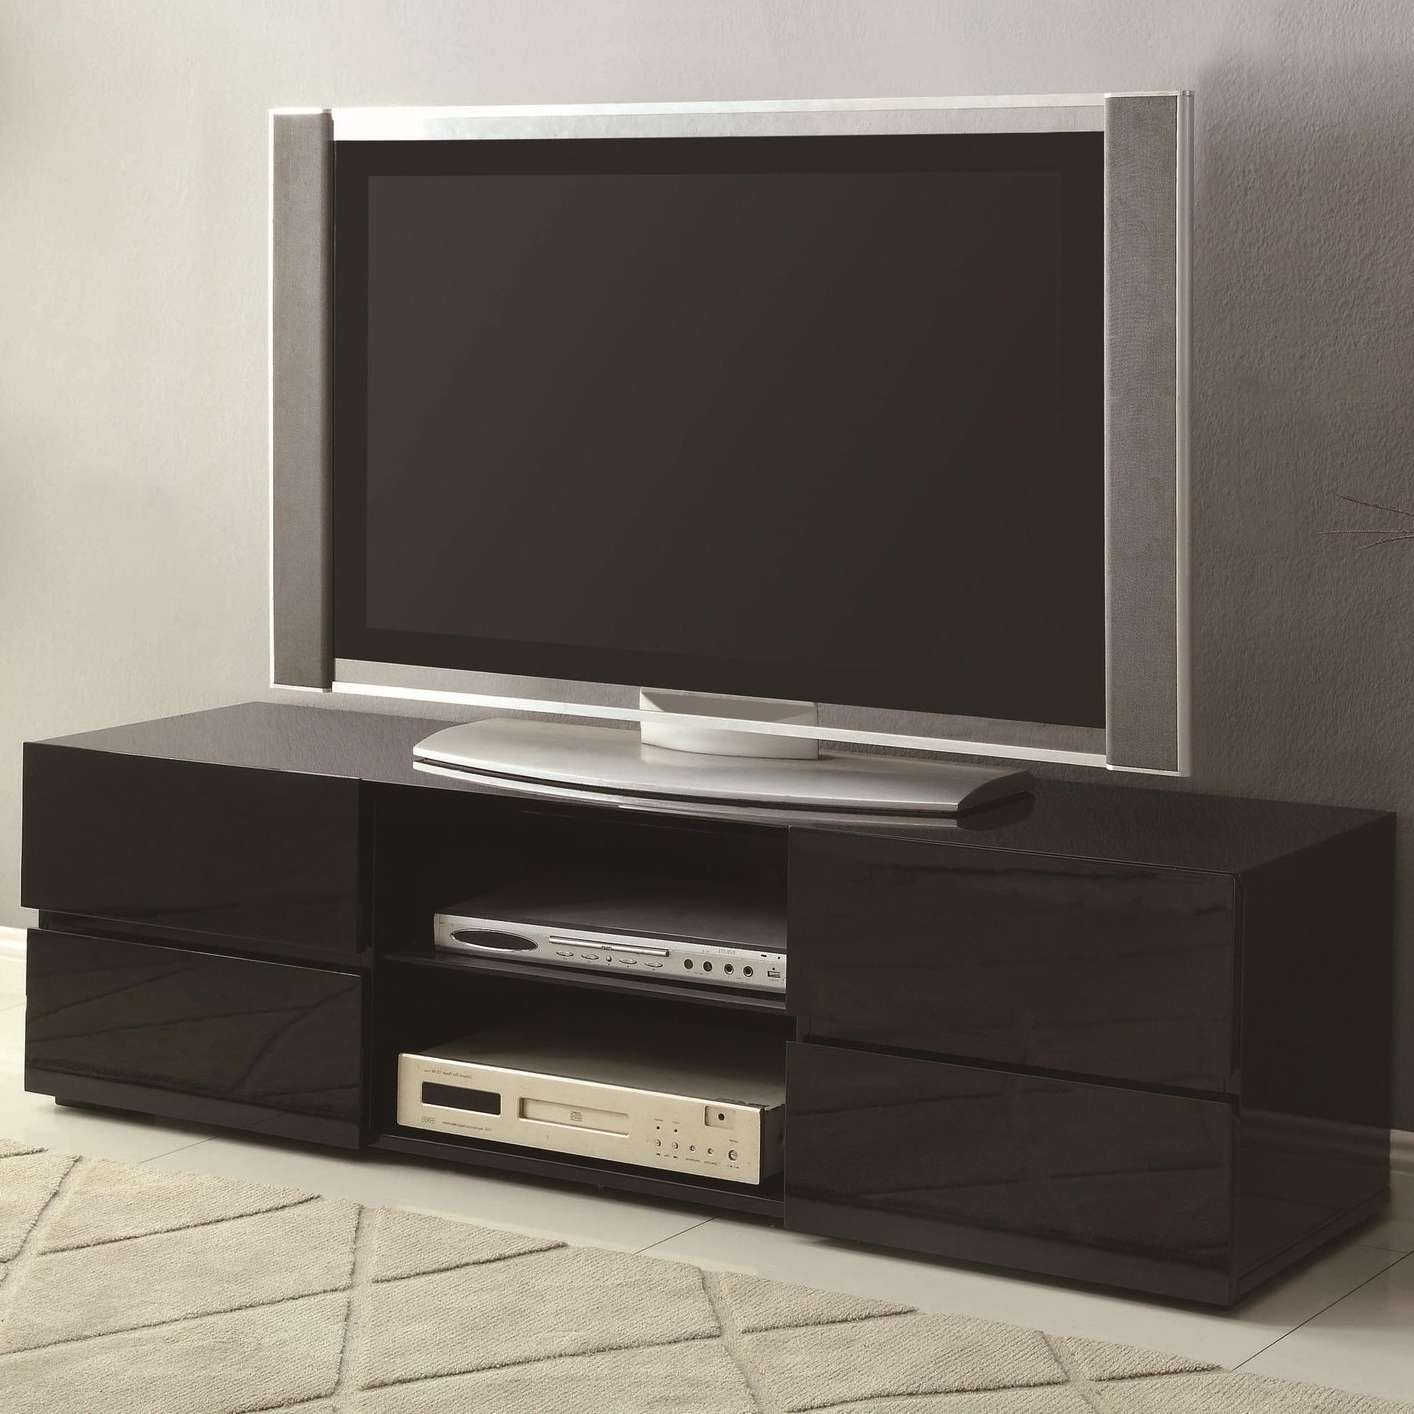 Black Wood Tv Stand – Steal A Sofa Furniture Outlet Los Angeles Ca Pertaining To Wood Tv Stands With Glass Top (View 3 of 15)